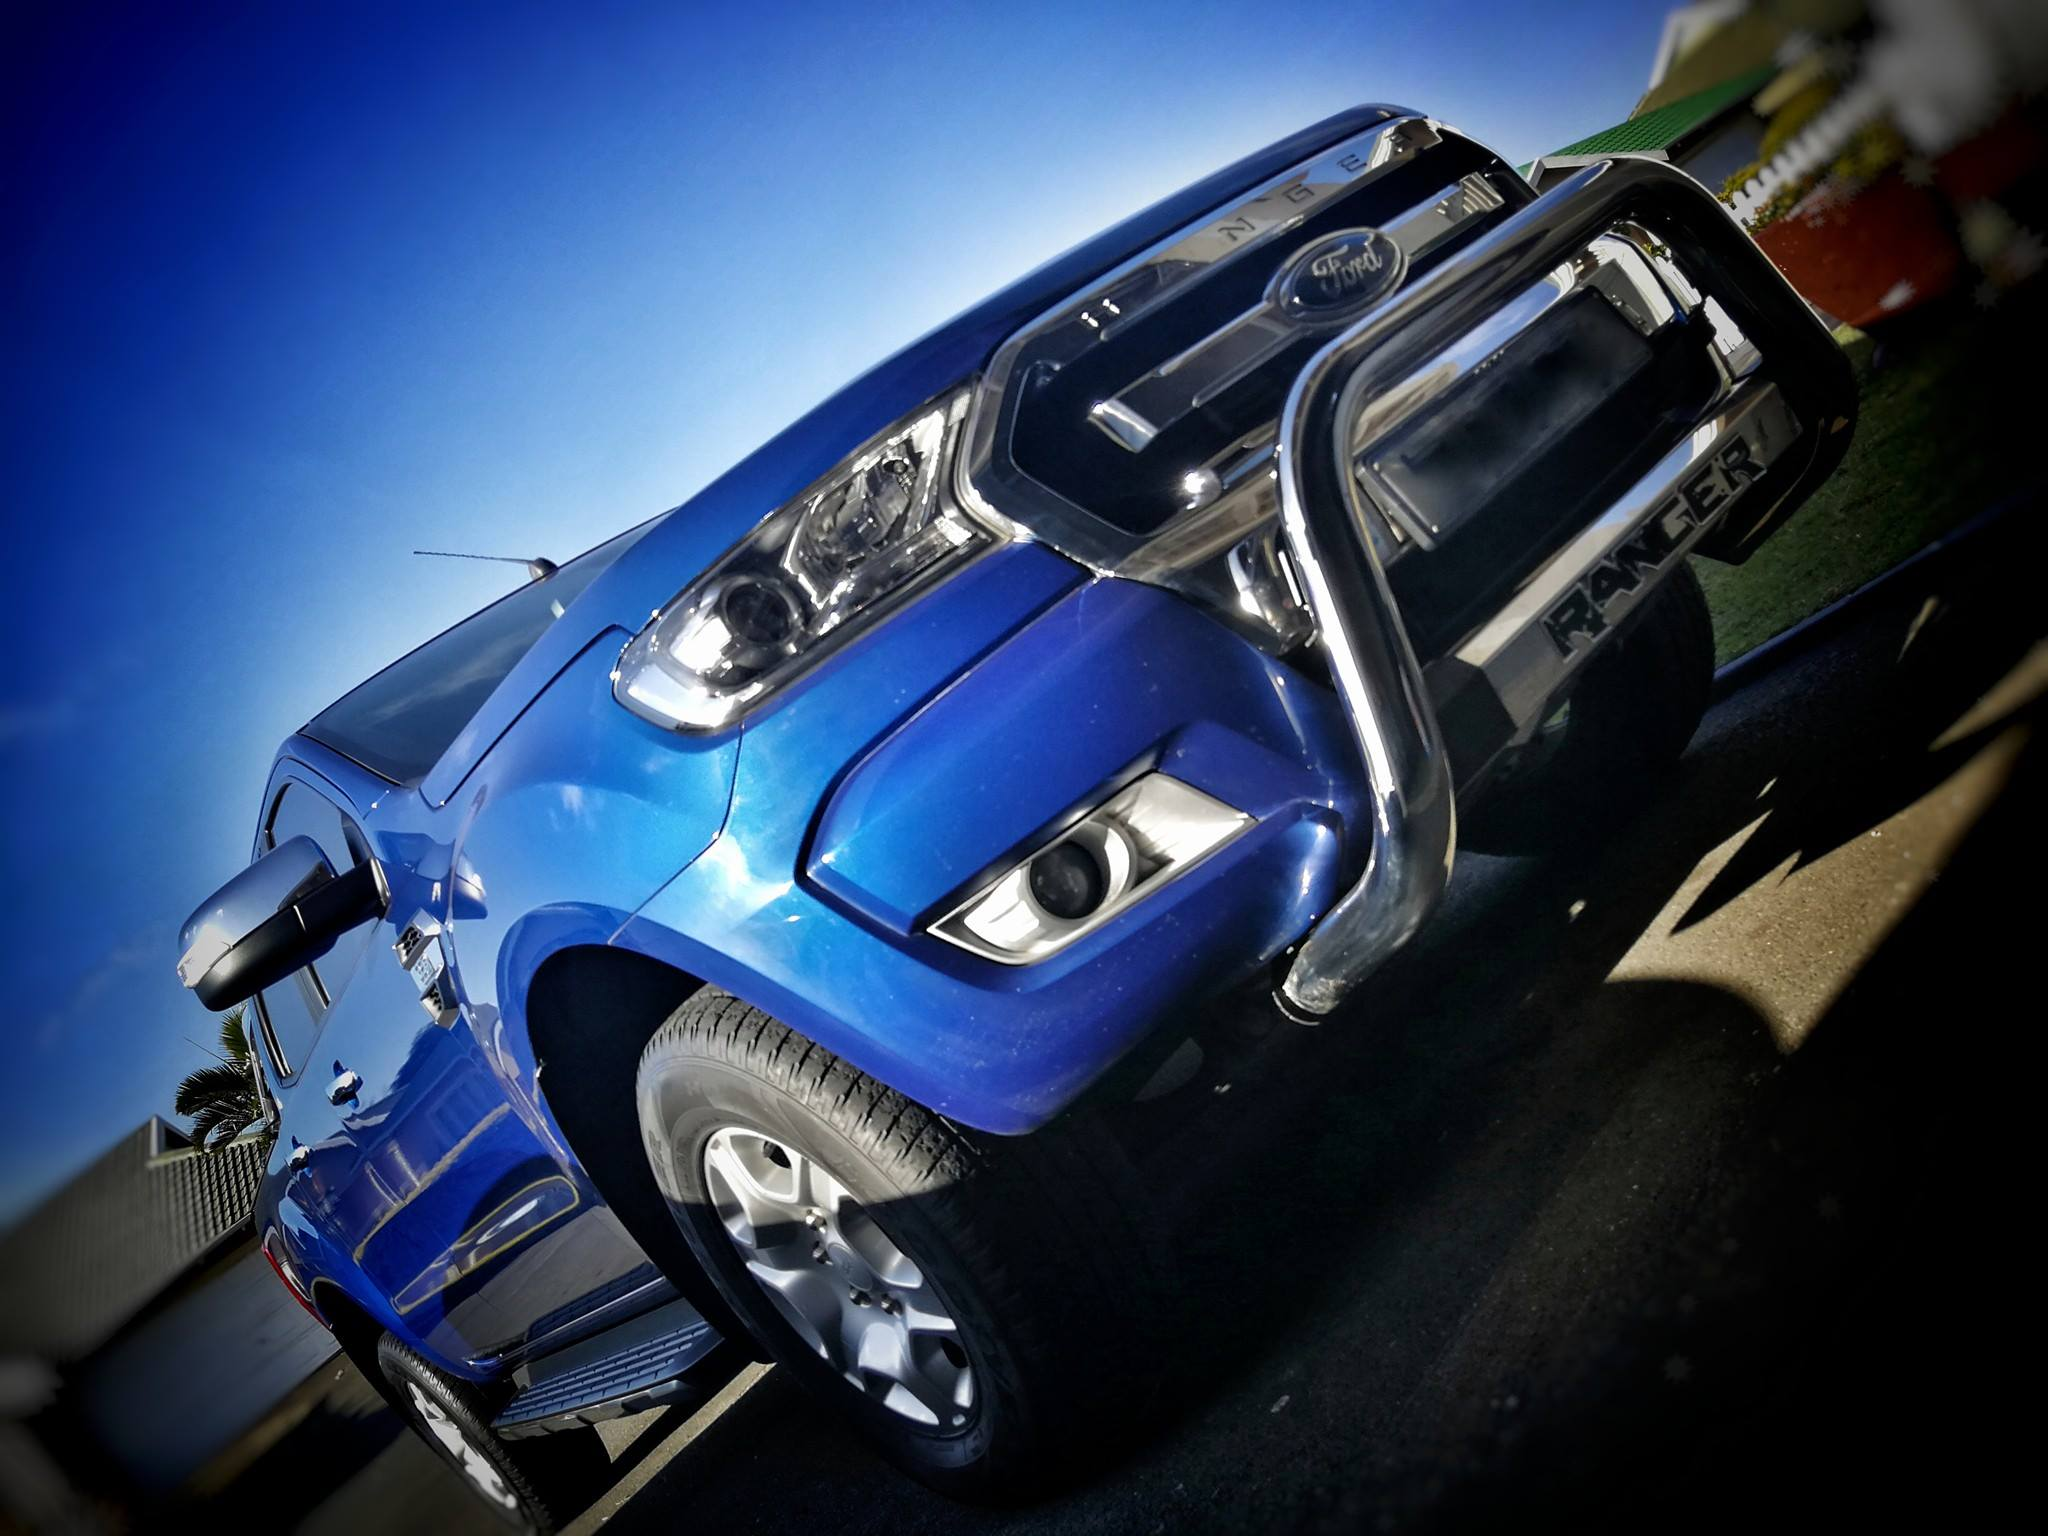 RK motion Ford Ranger remapped